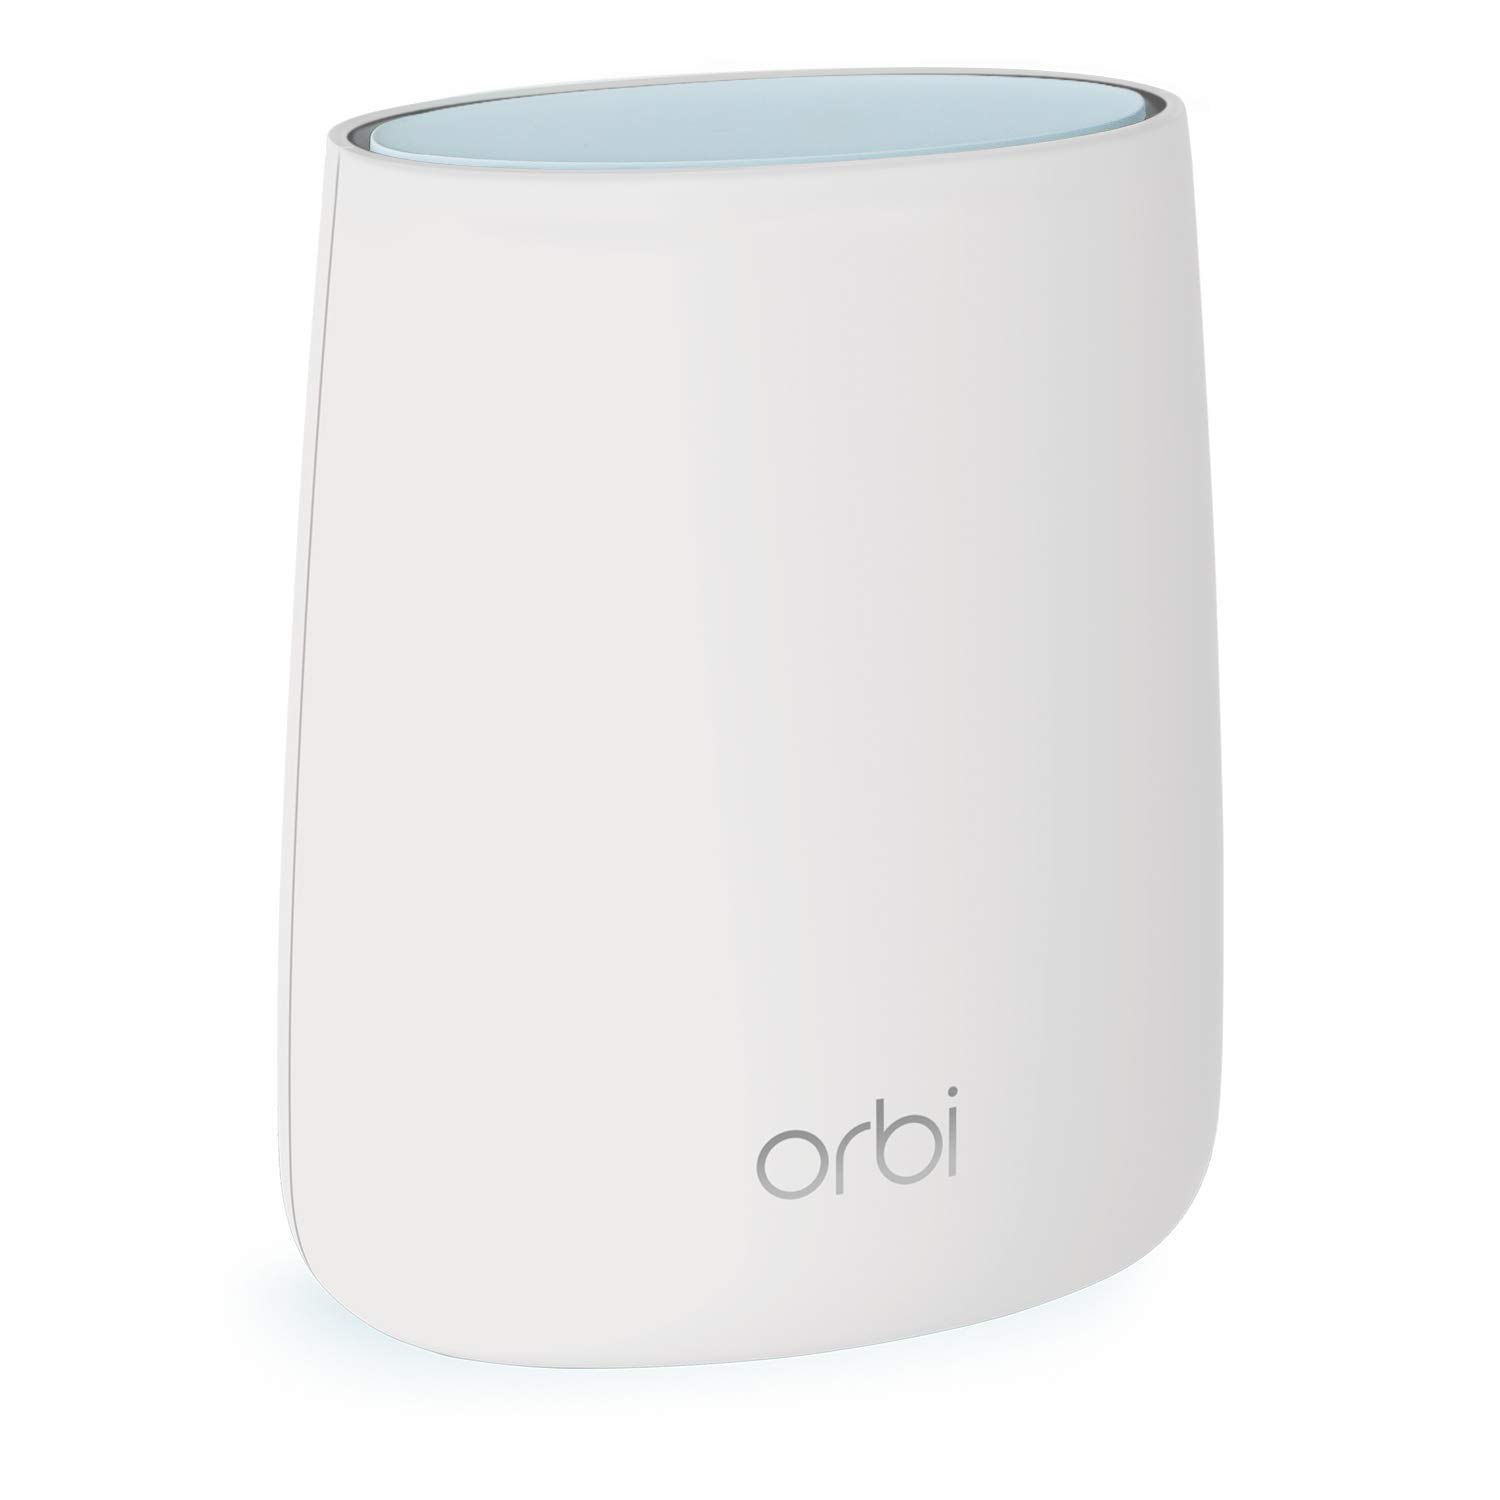 Orbi RBR20 Wireless Router